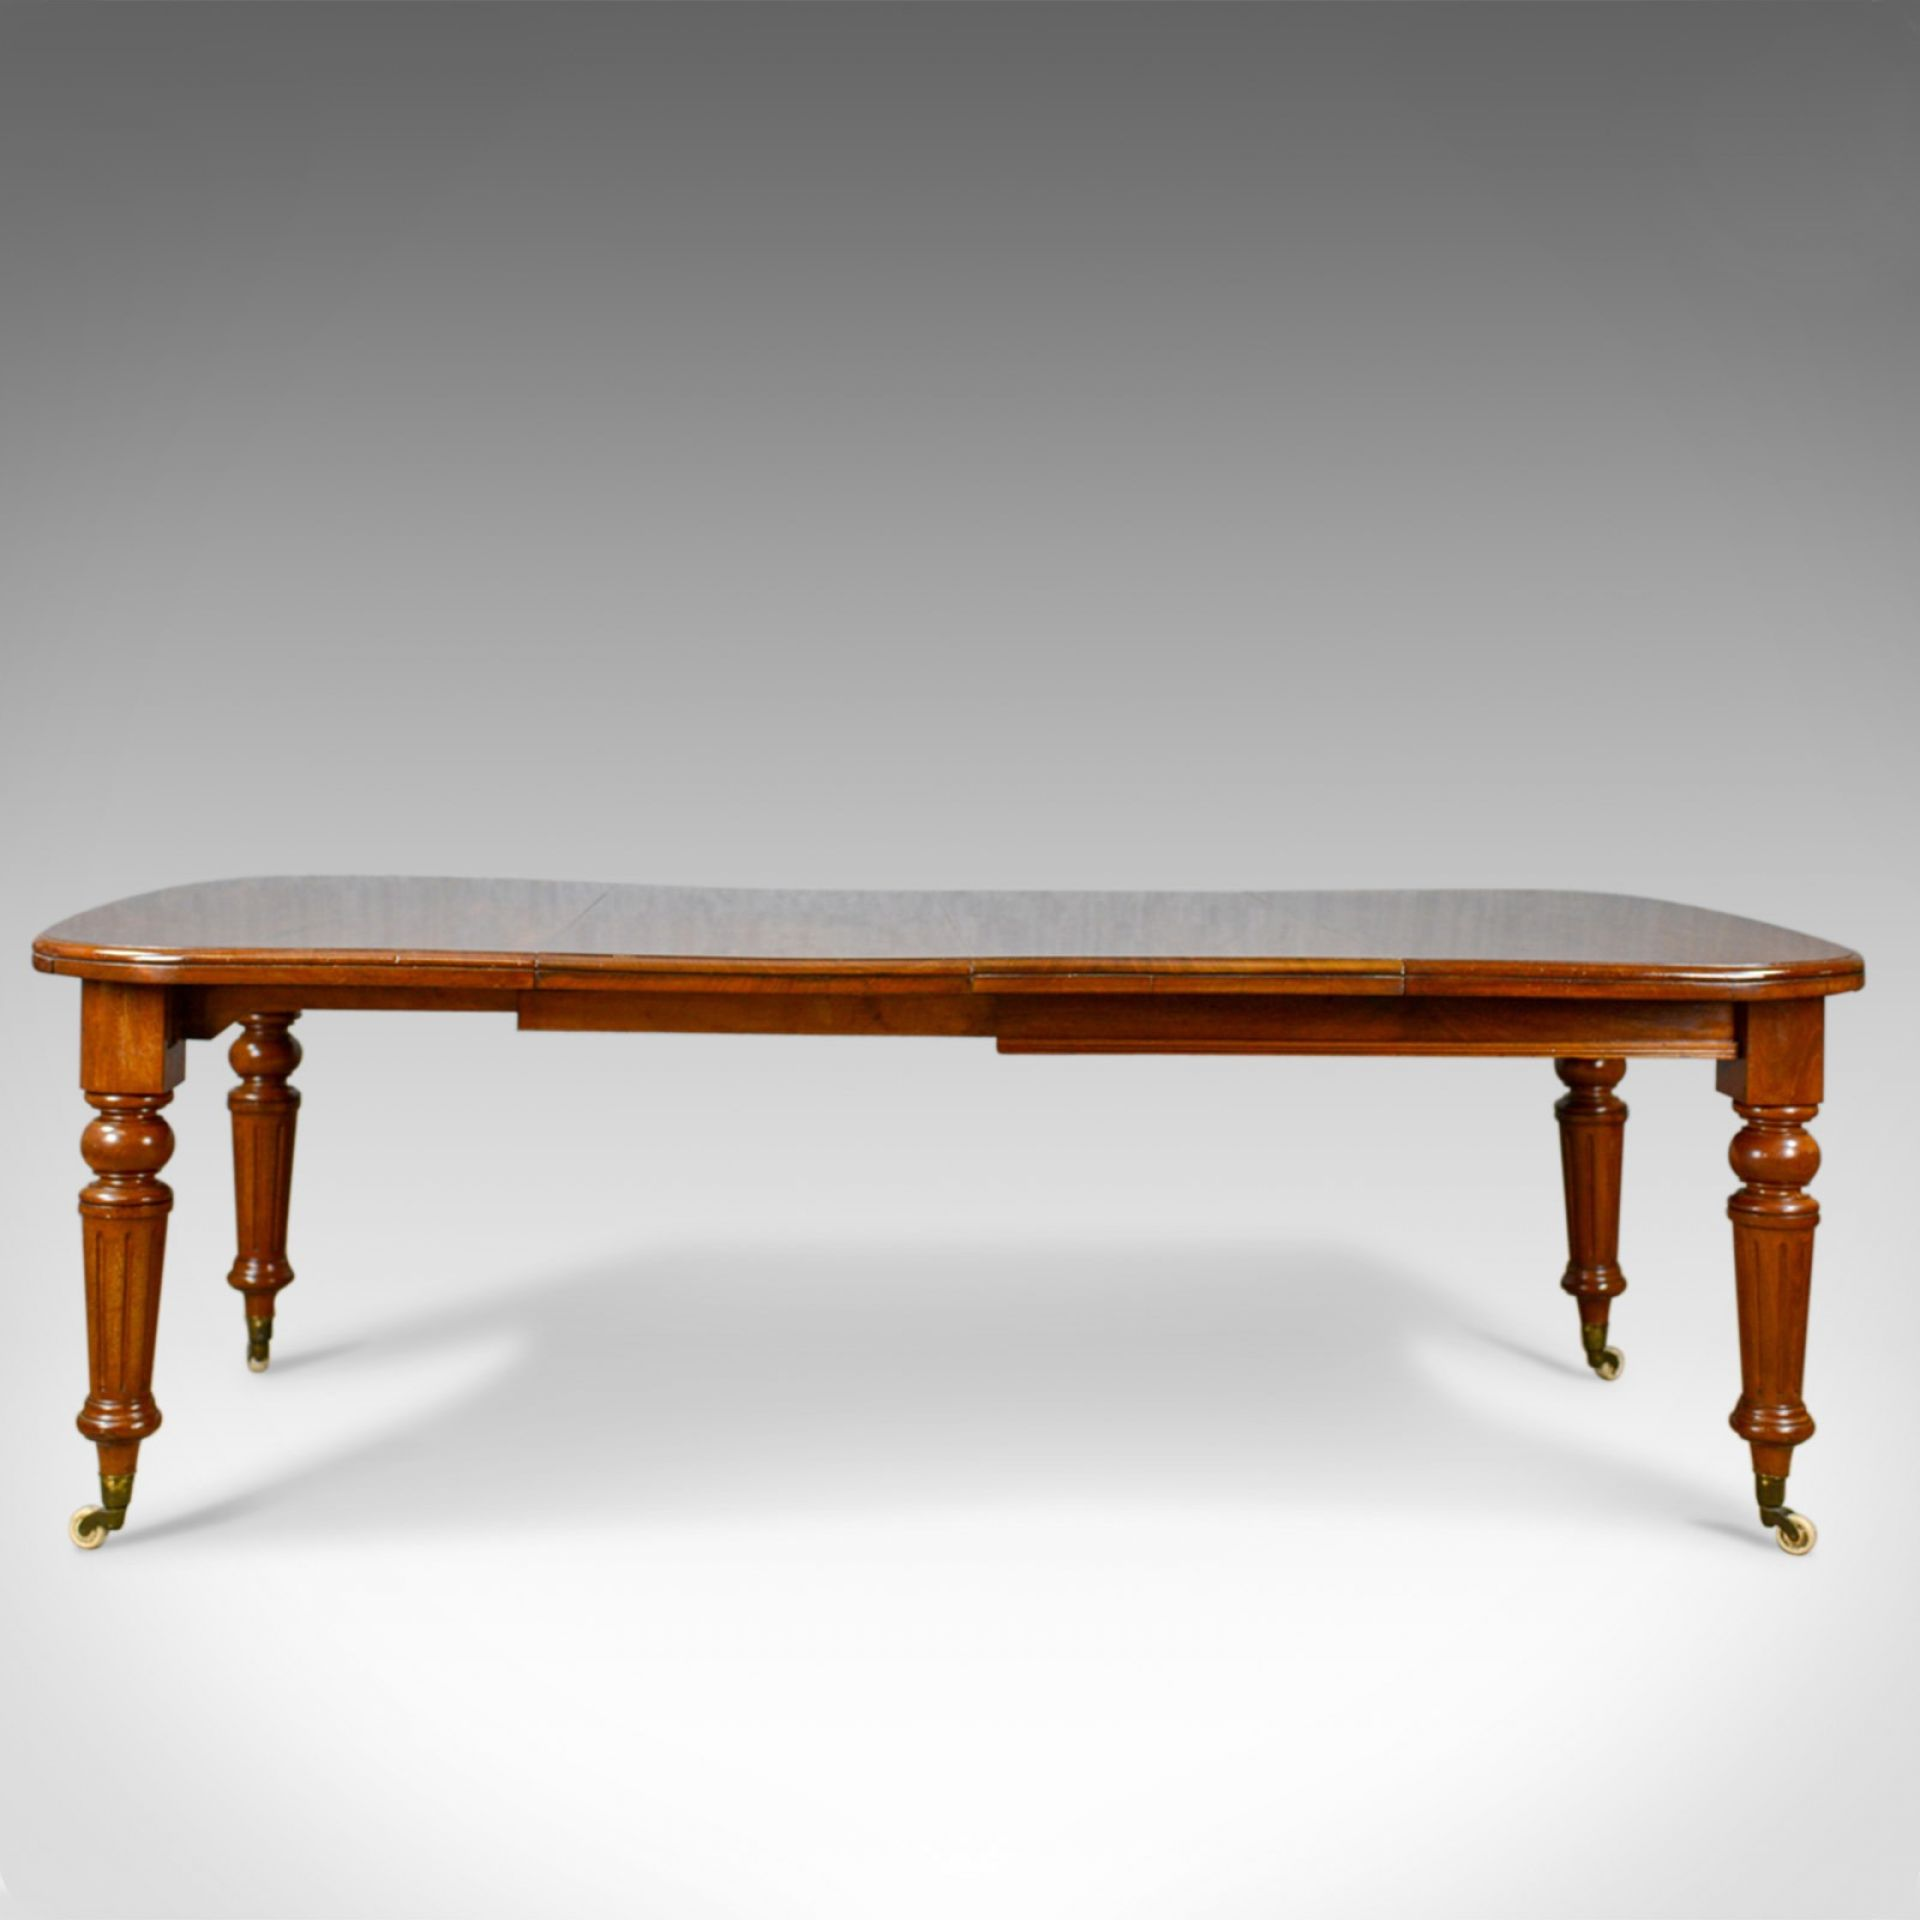 Antique Dining Table, English, Mahogany, Victorian, Extending, Seats 10, c.1860